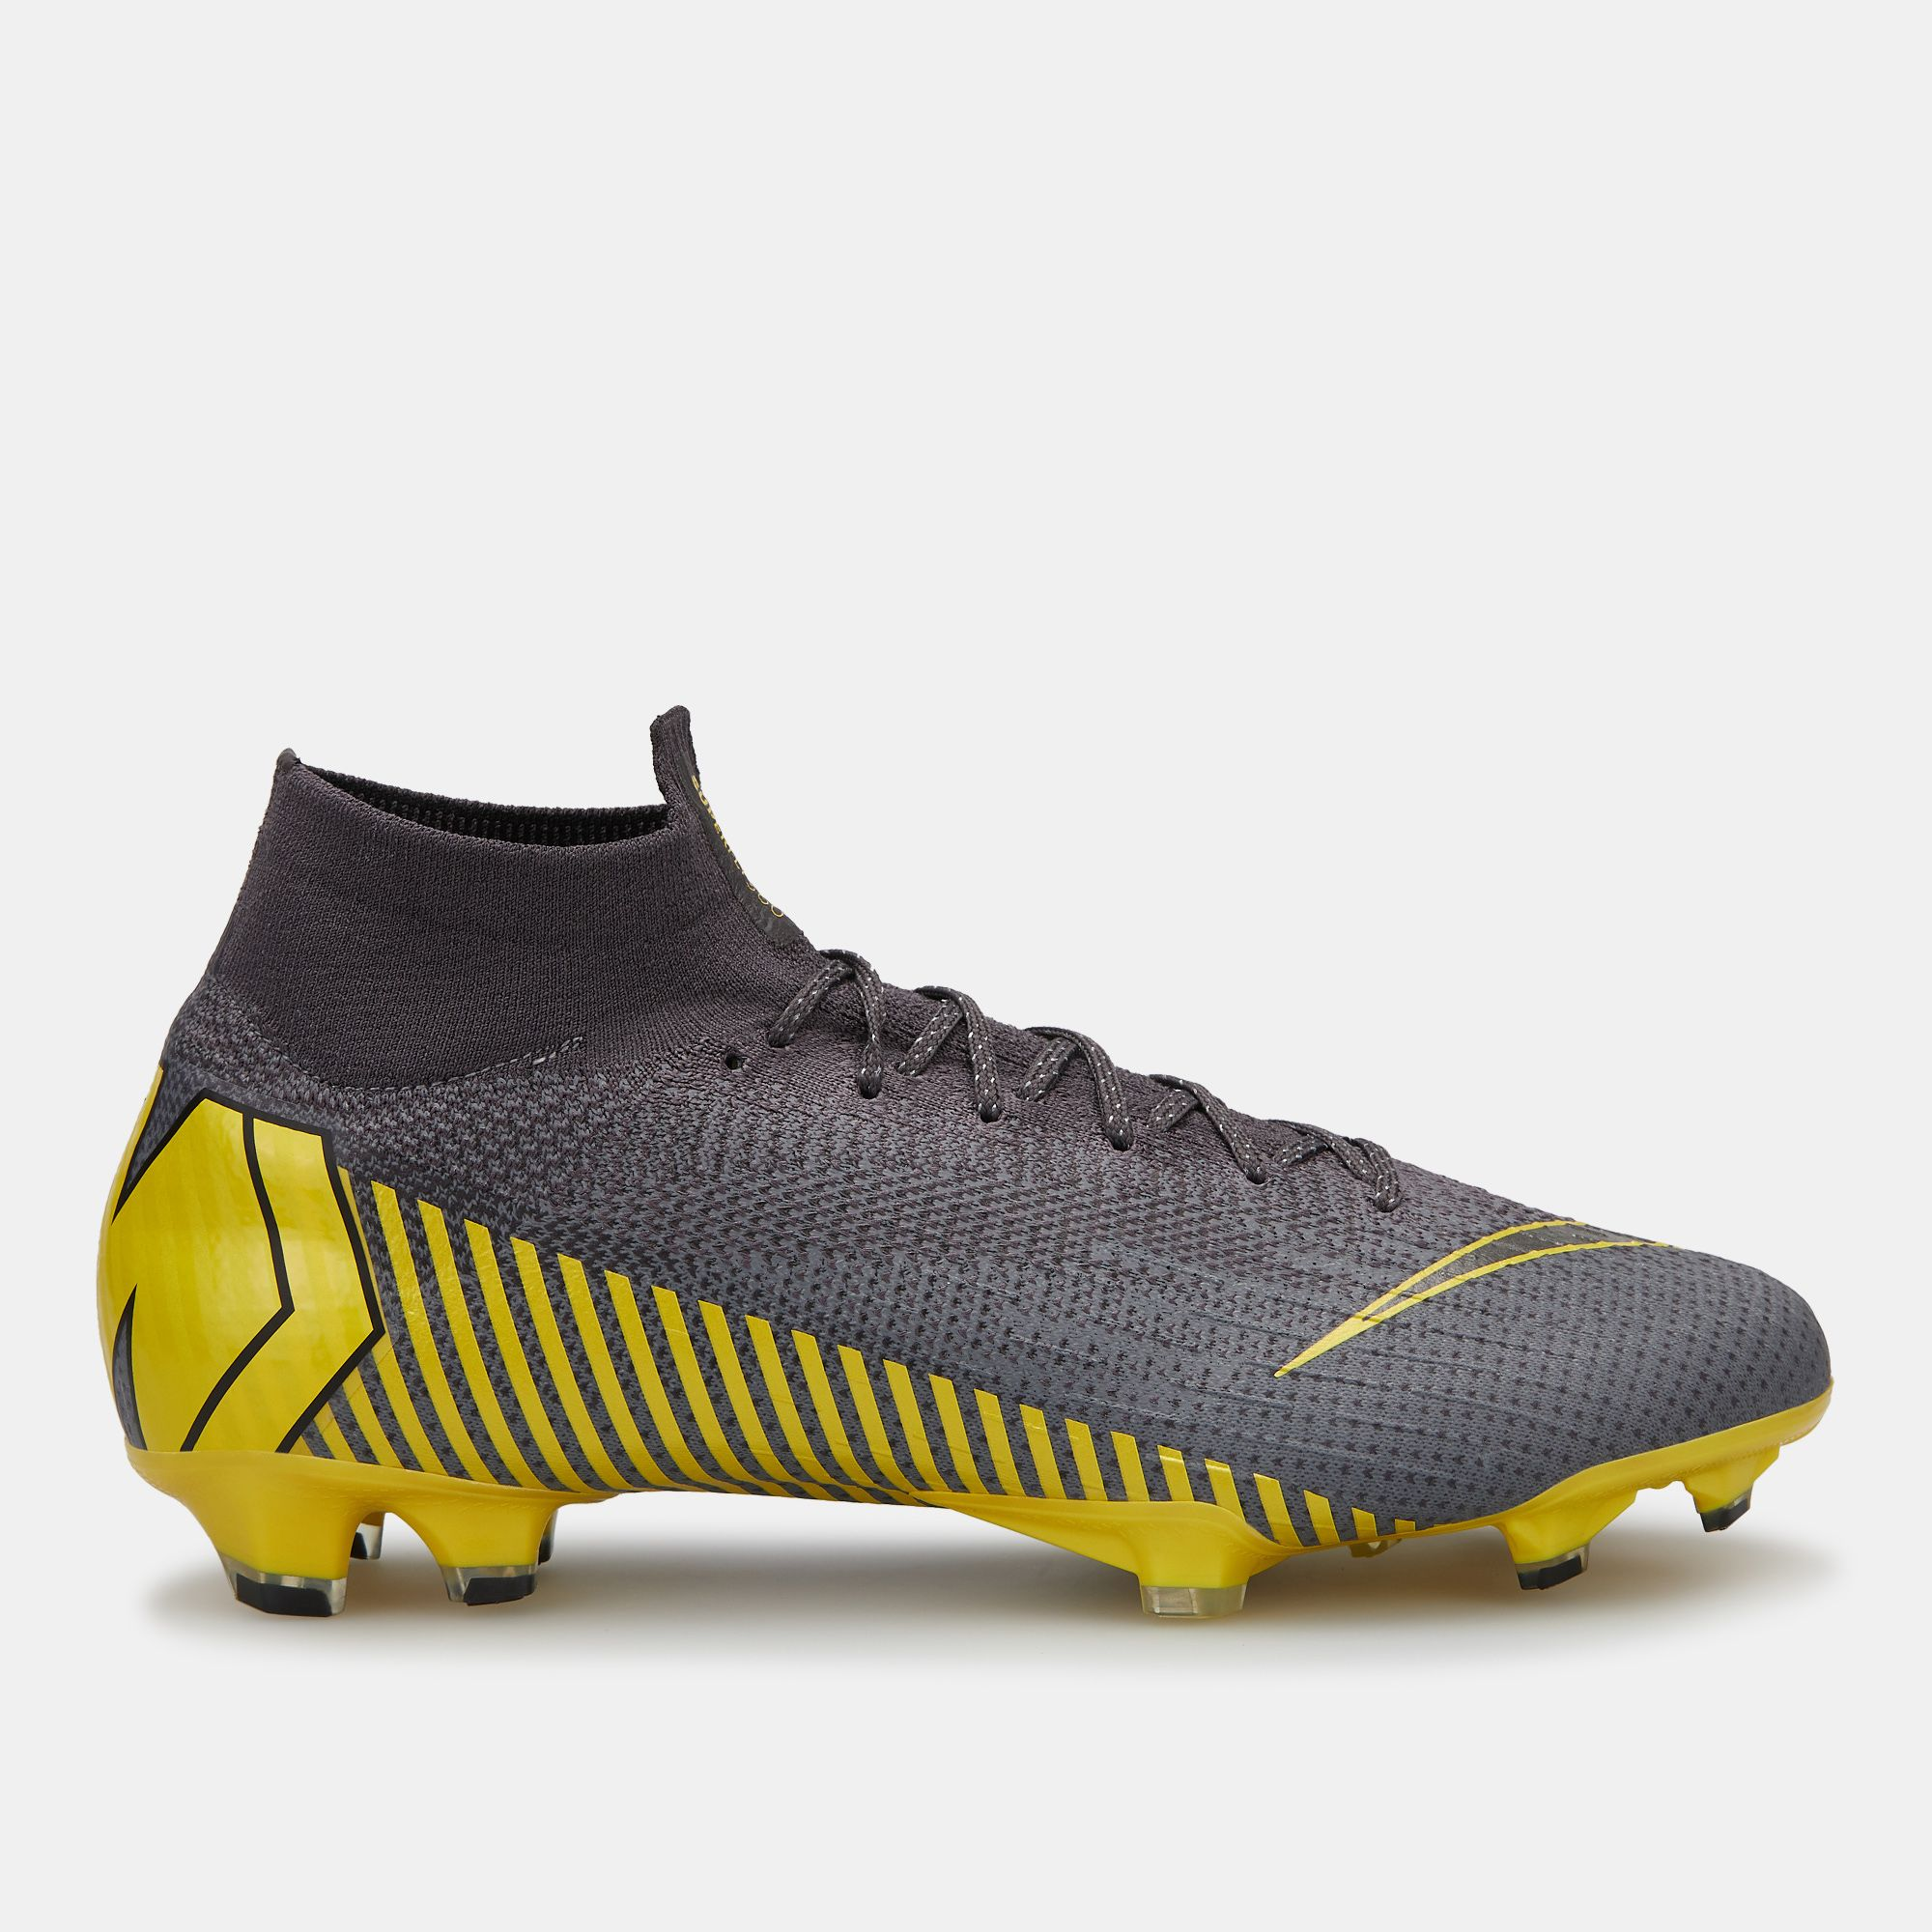 low priced 8689a dd2c5 Nike Men's Game Over Pack Mercurial Superfly 360 Elite Firm Ground Football  Shoe   Sports Shoes   Shoes   Mens   SSS